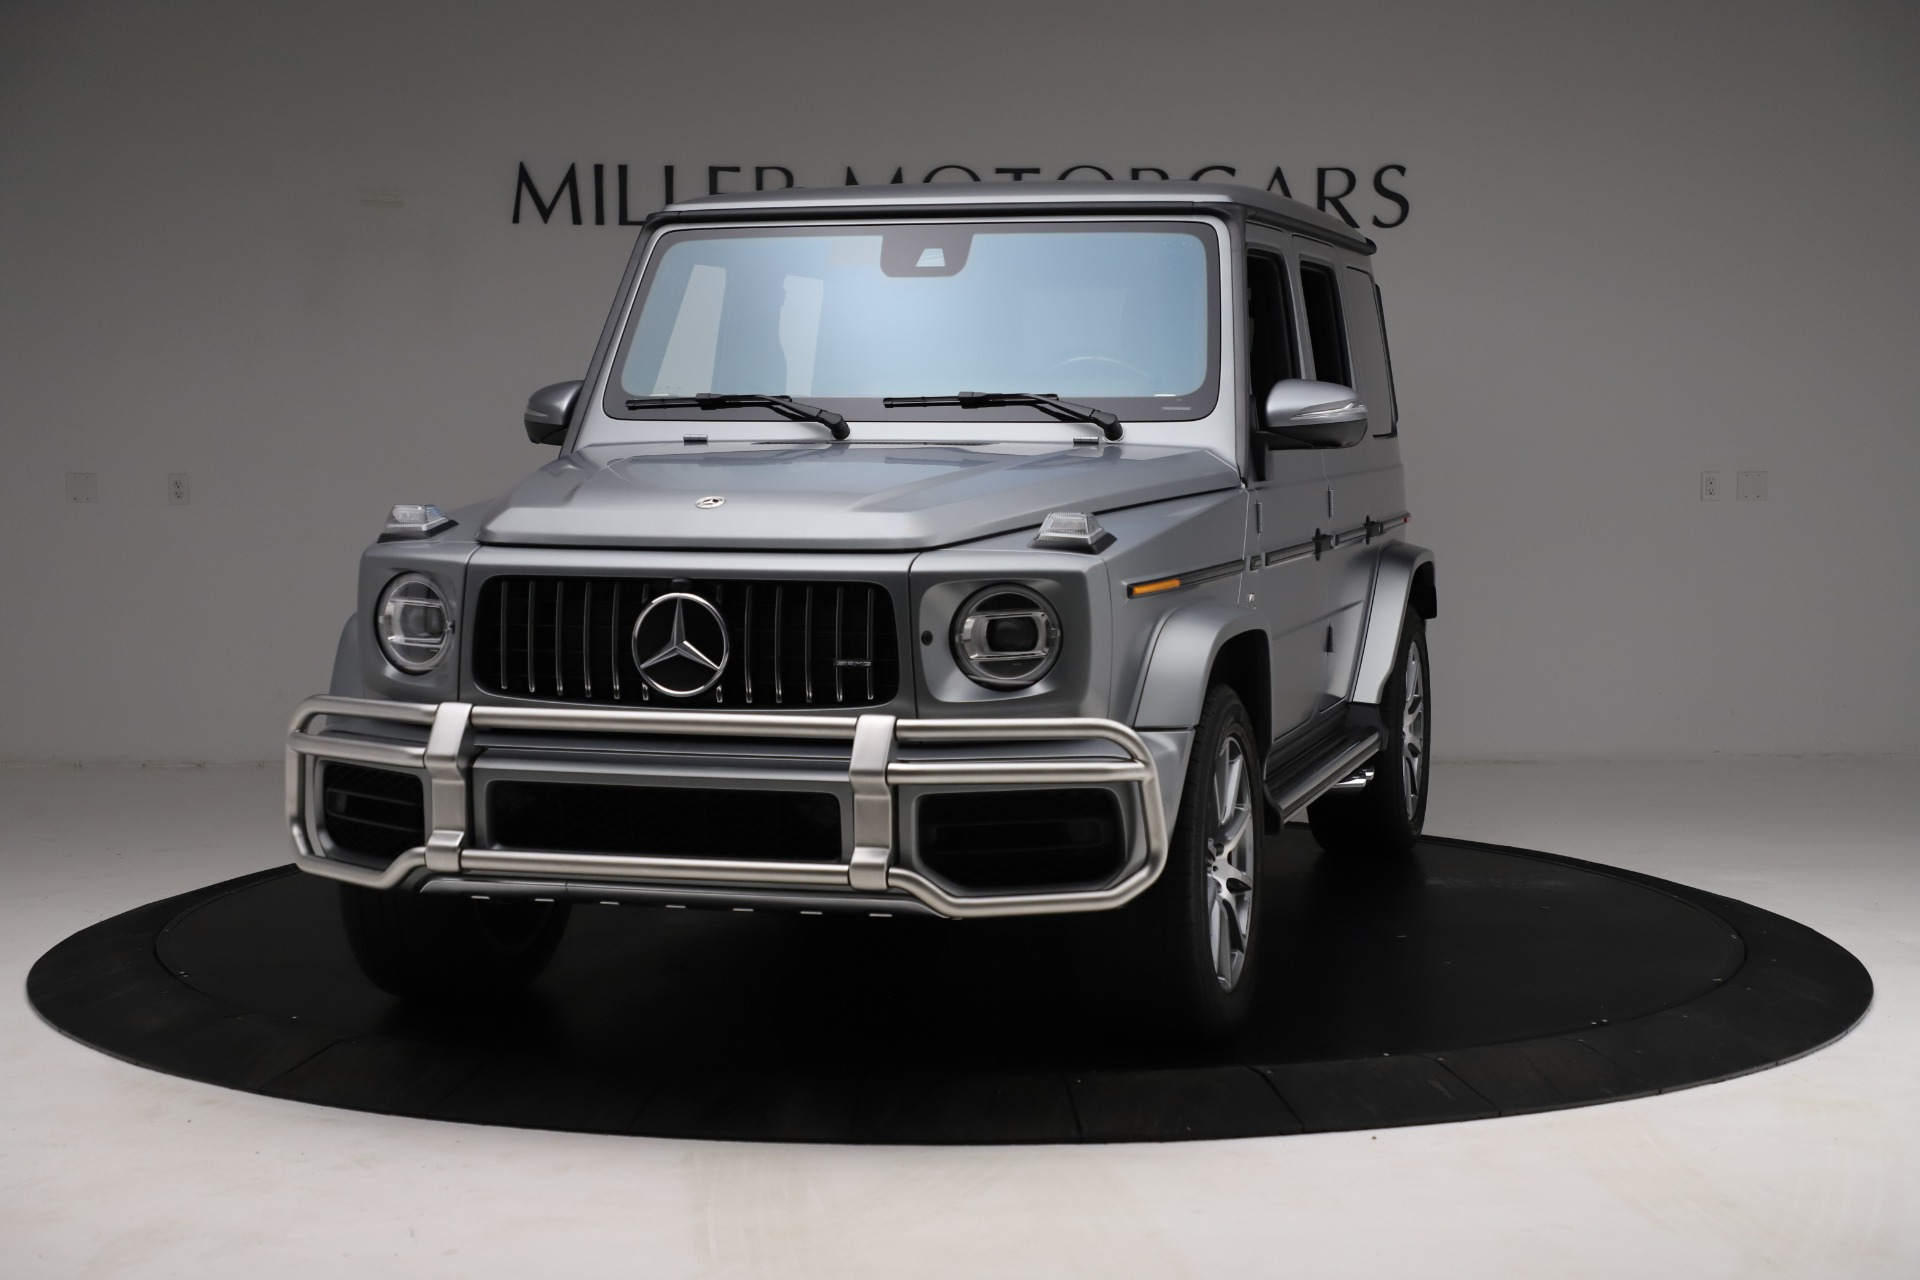 Used 2021 Mercedes-Benz G-Class AMG G 63 for sale $219,900 at Bentley Greenwich in Greenwich CT 06830 1